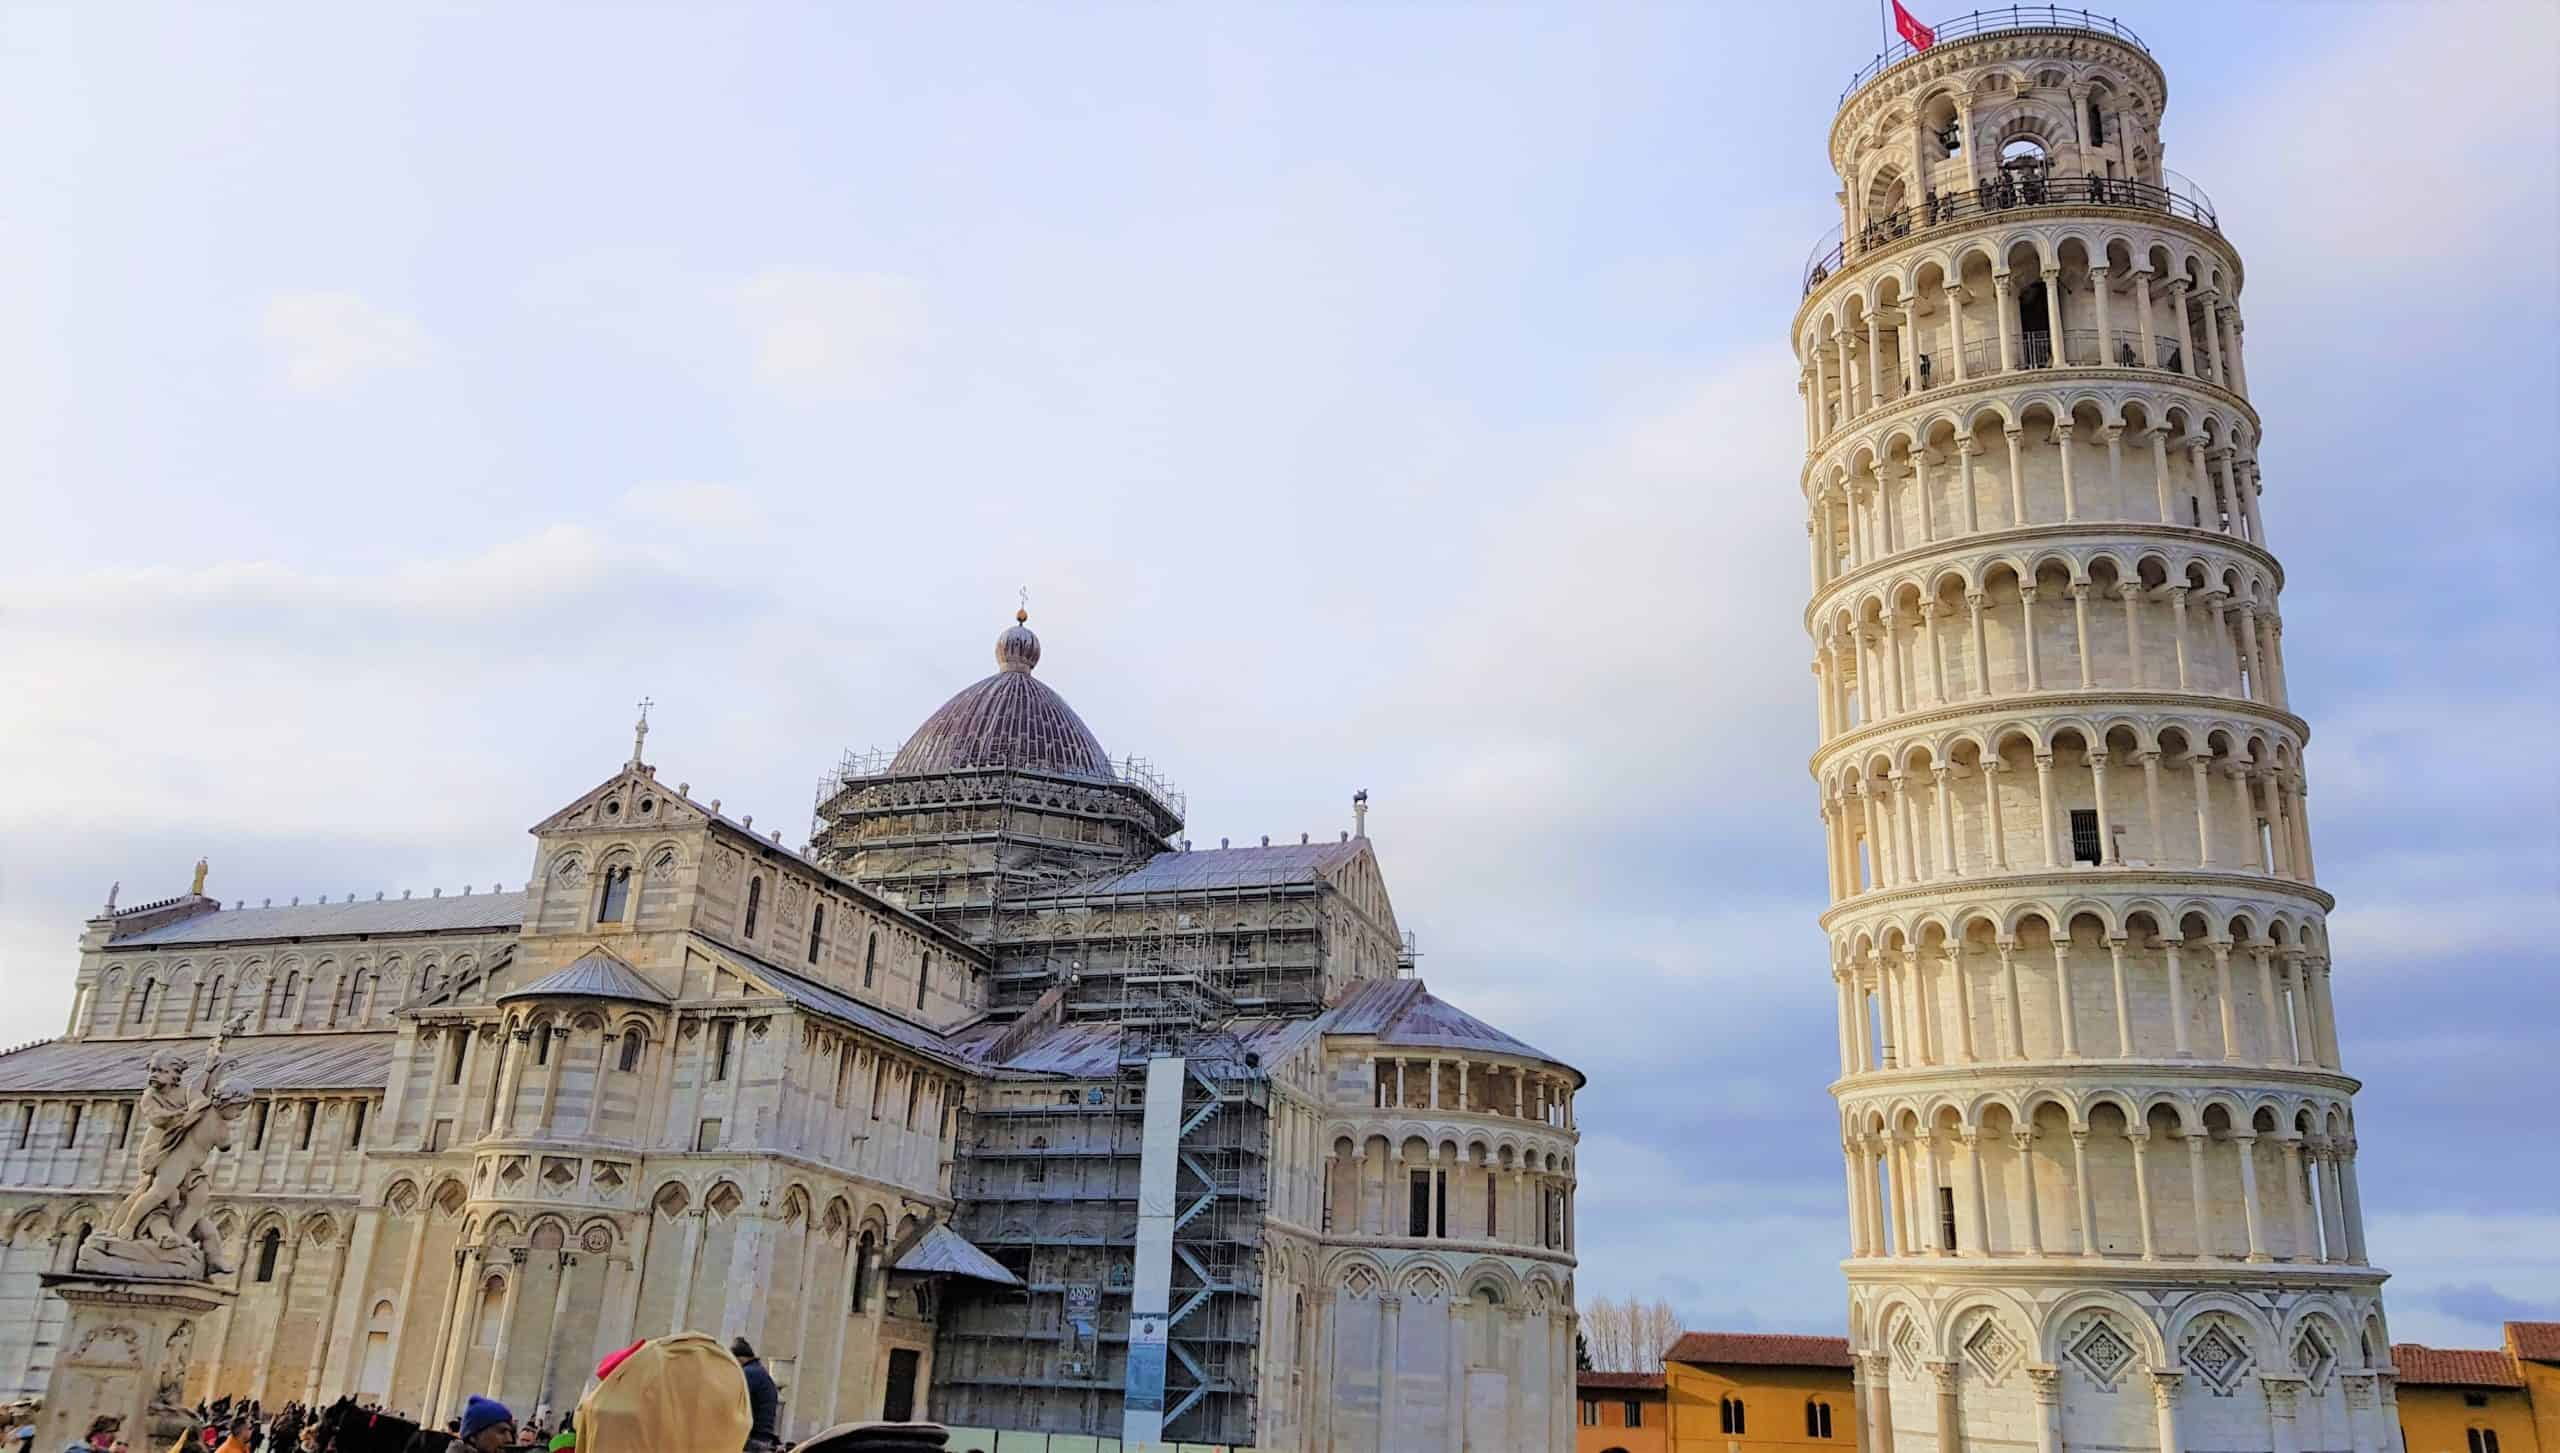 Why is the leaning tower of pisa leaning